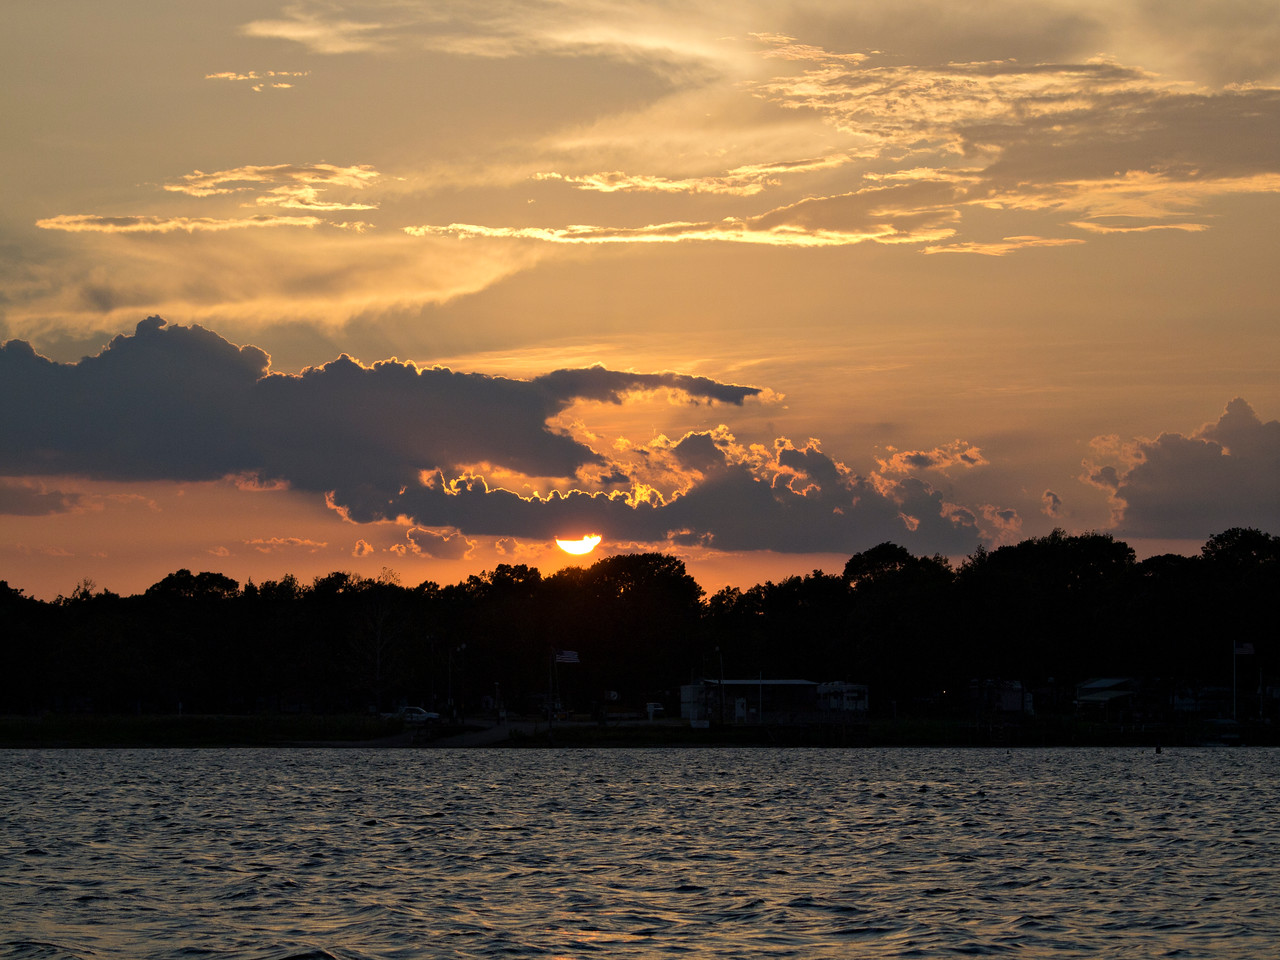 Sunset over Hideaway Harbor - Lake Fork, Texas  Order Code: B41